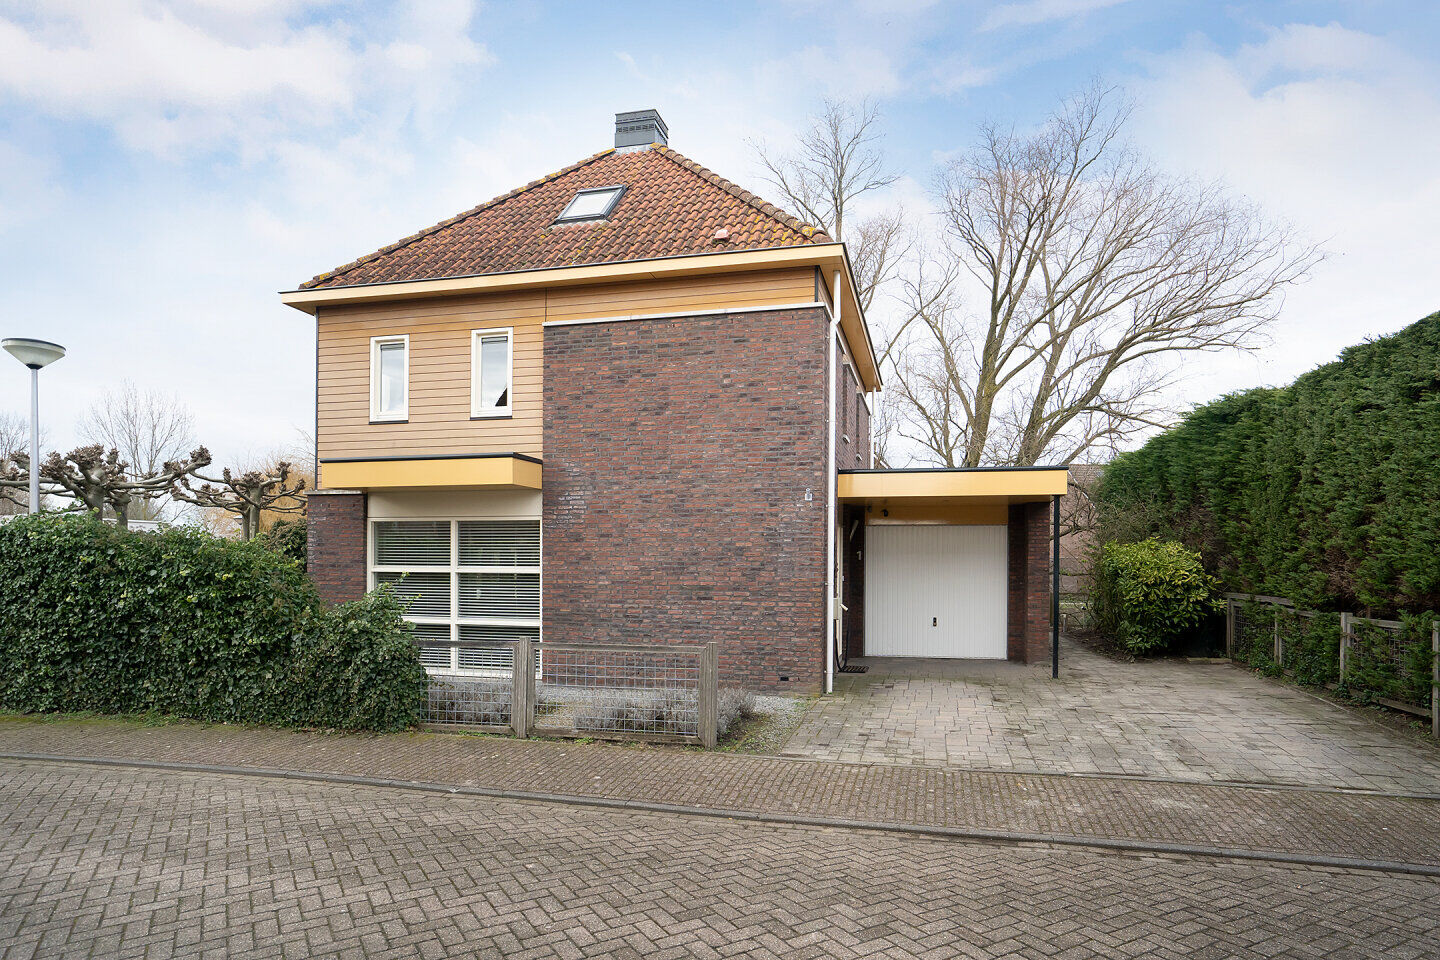 37157-jan_de_preestraat_1-steenbergen-1580373412